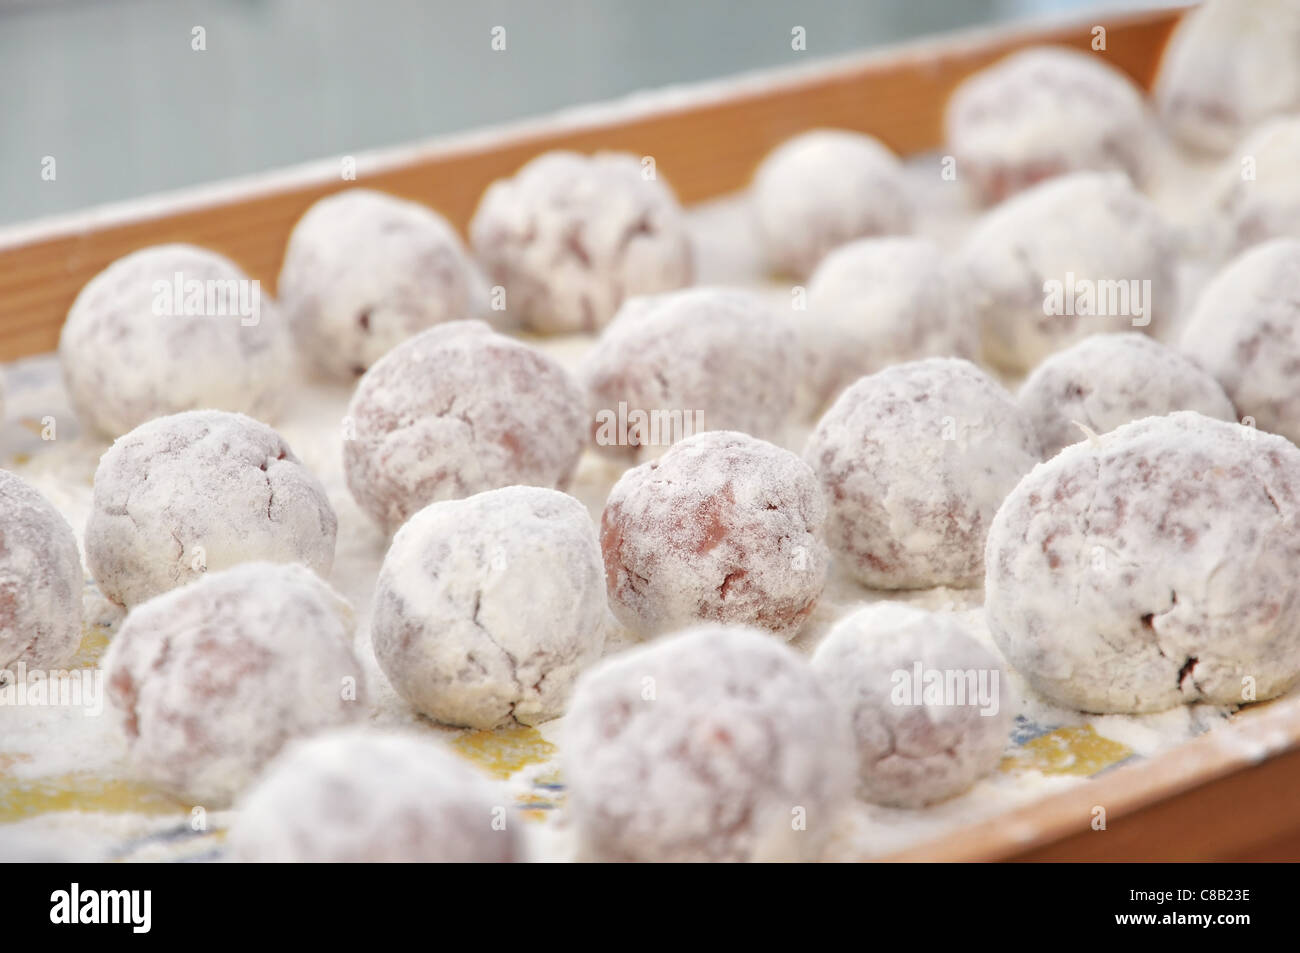 Meat balls in the flour on a tray ready to be cooked - Stock Image